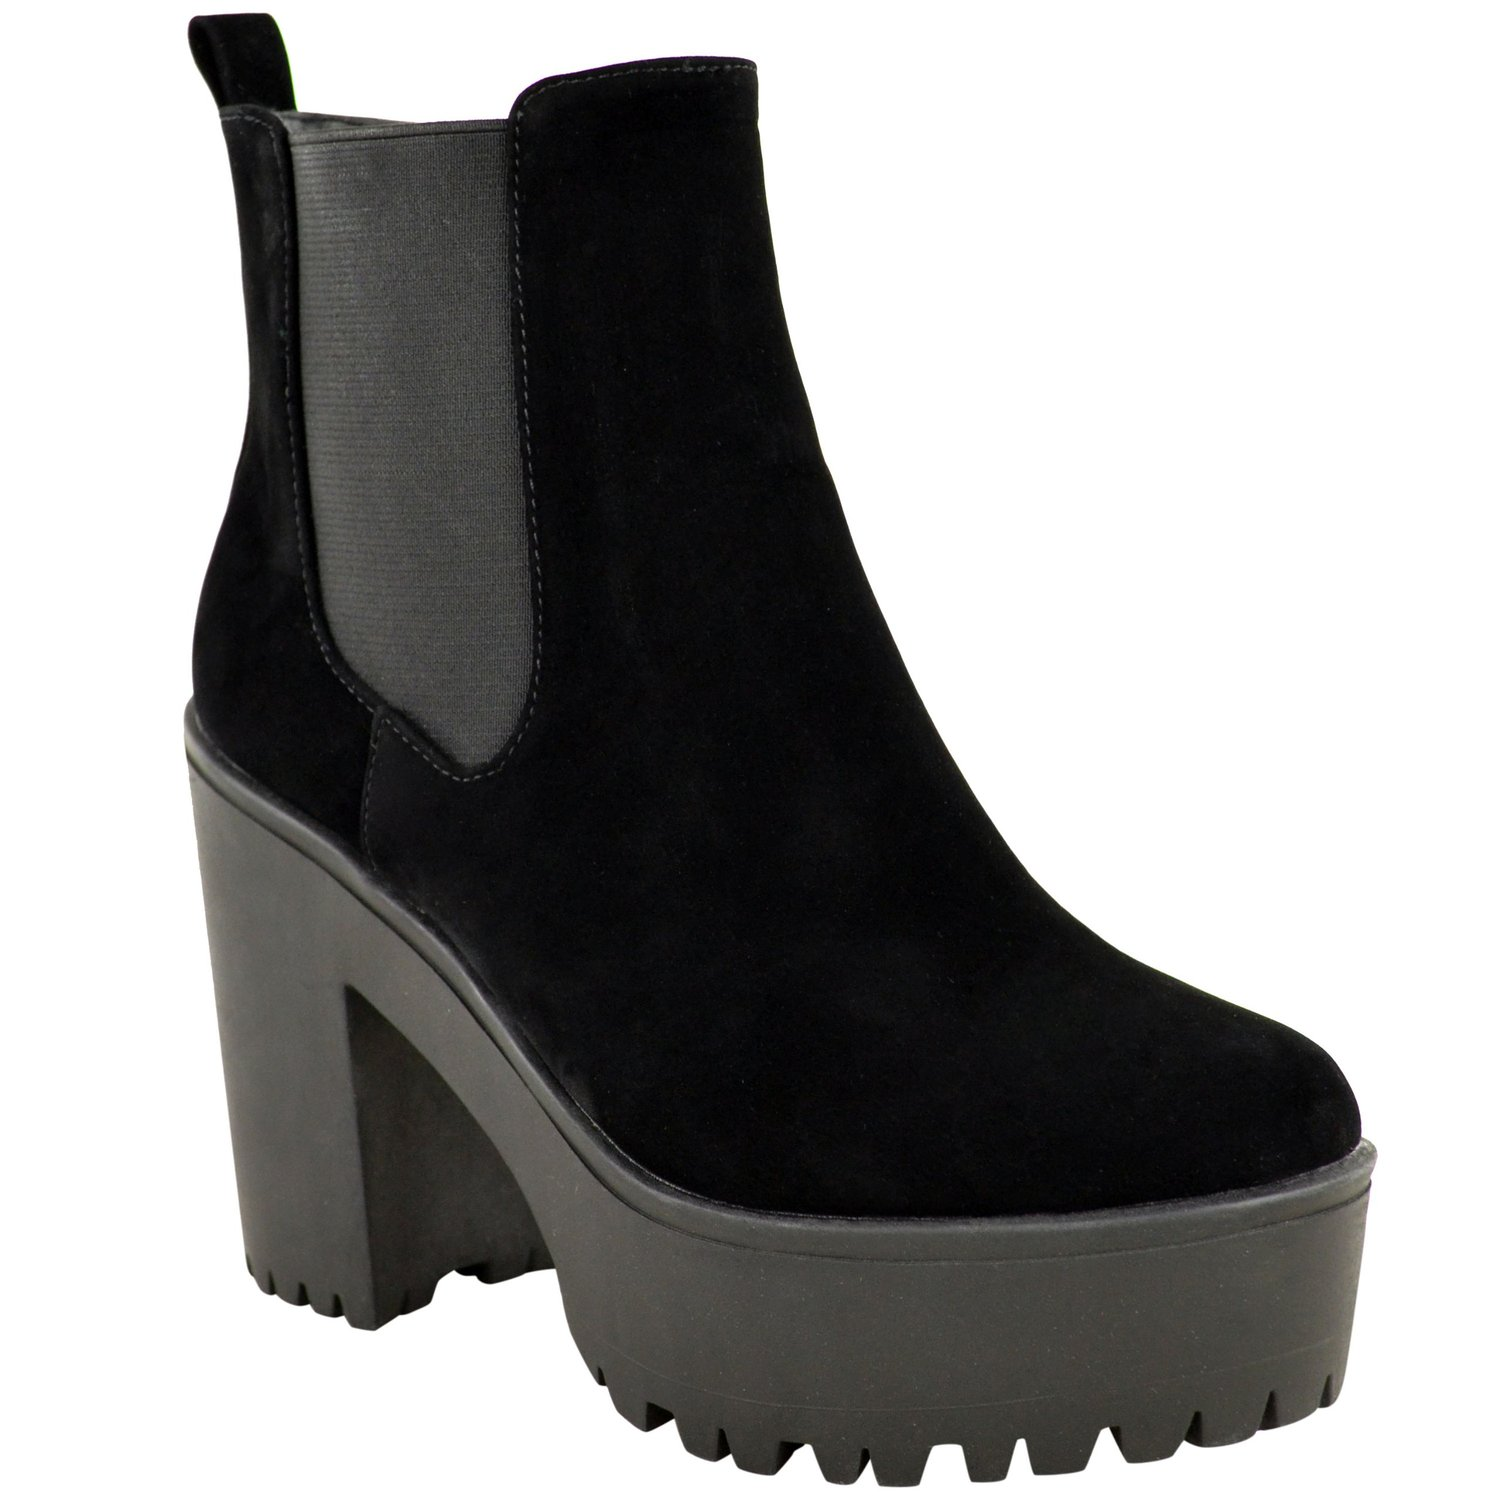 com: Fashion Thirsty Womens New Chelsea Cut Out Ankle Boots Low ...